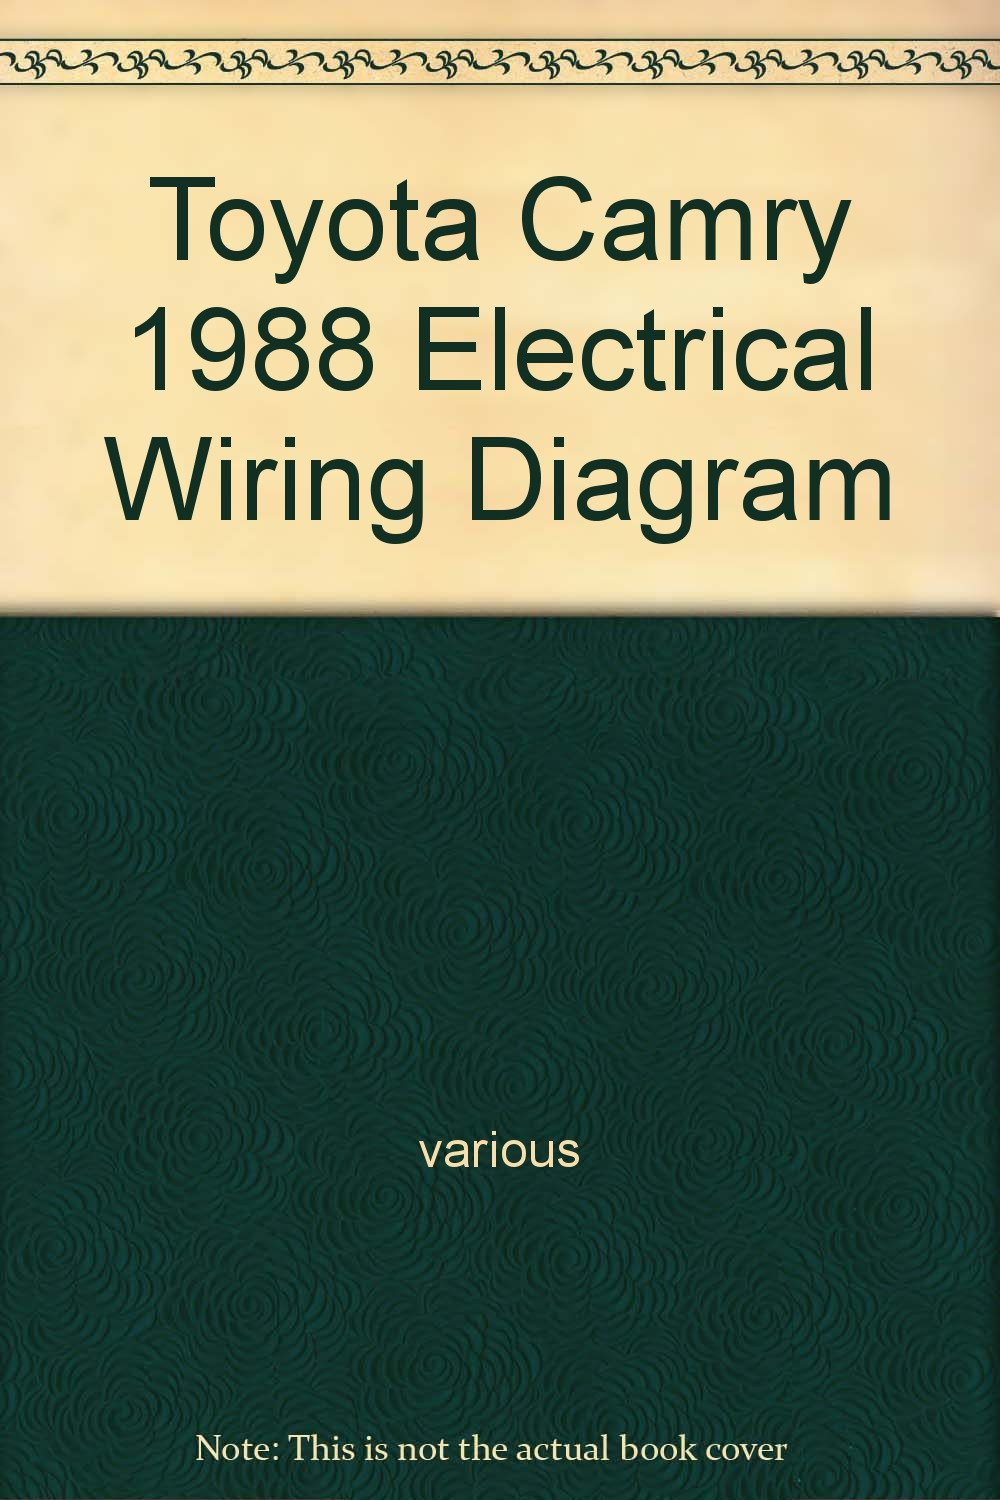 Toyota Camry 1988 Electrical Wiring Diagram Various Books Electric Book